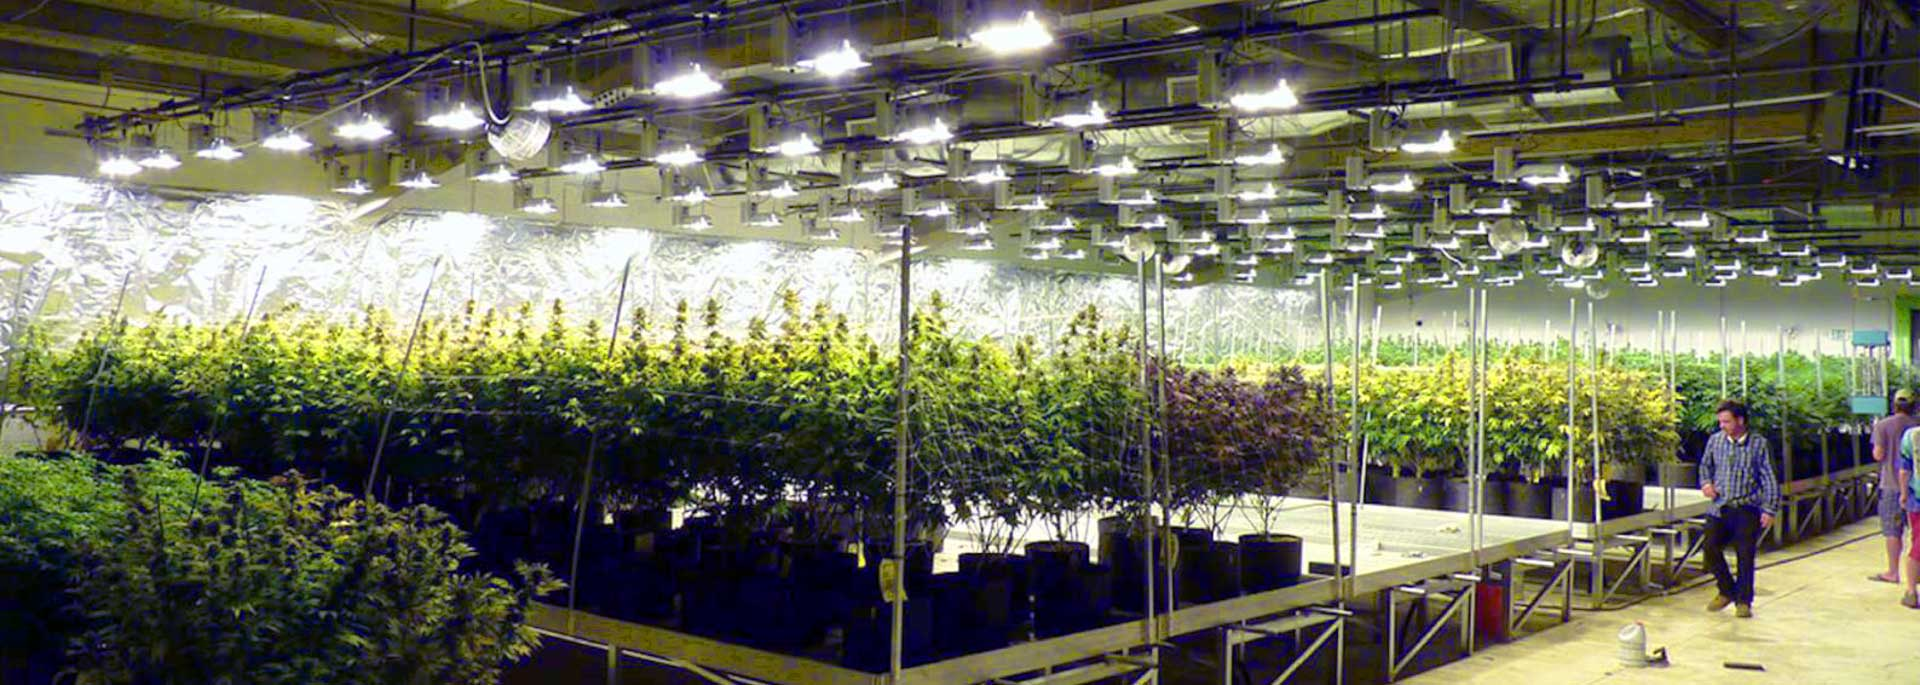 Airius-Horticultural-LED-Lighting-2